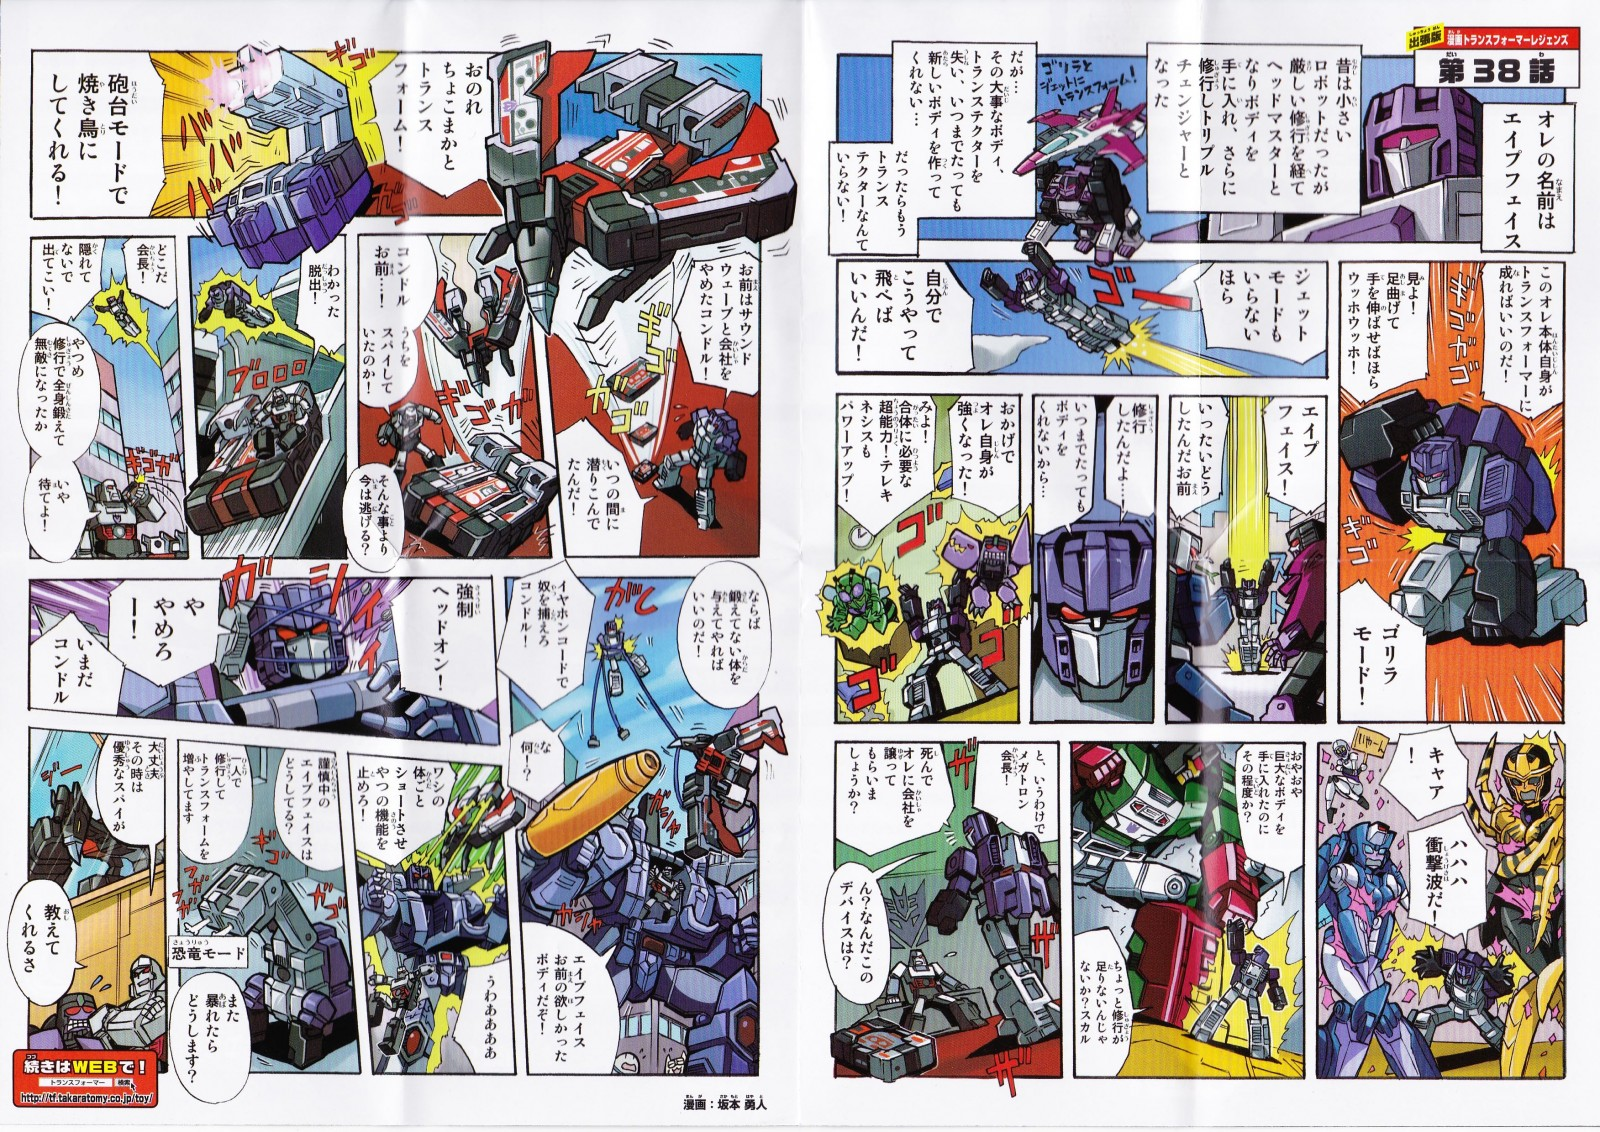 Transformers News: Bios and Comics for Takara Tomy Transformers Legends Soundwave, Ravage, Laserbeak, Brainstorm